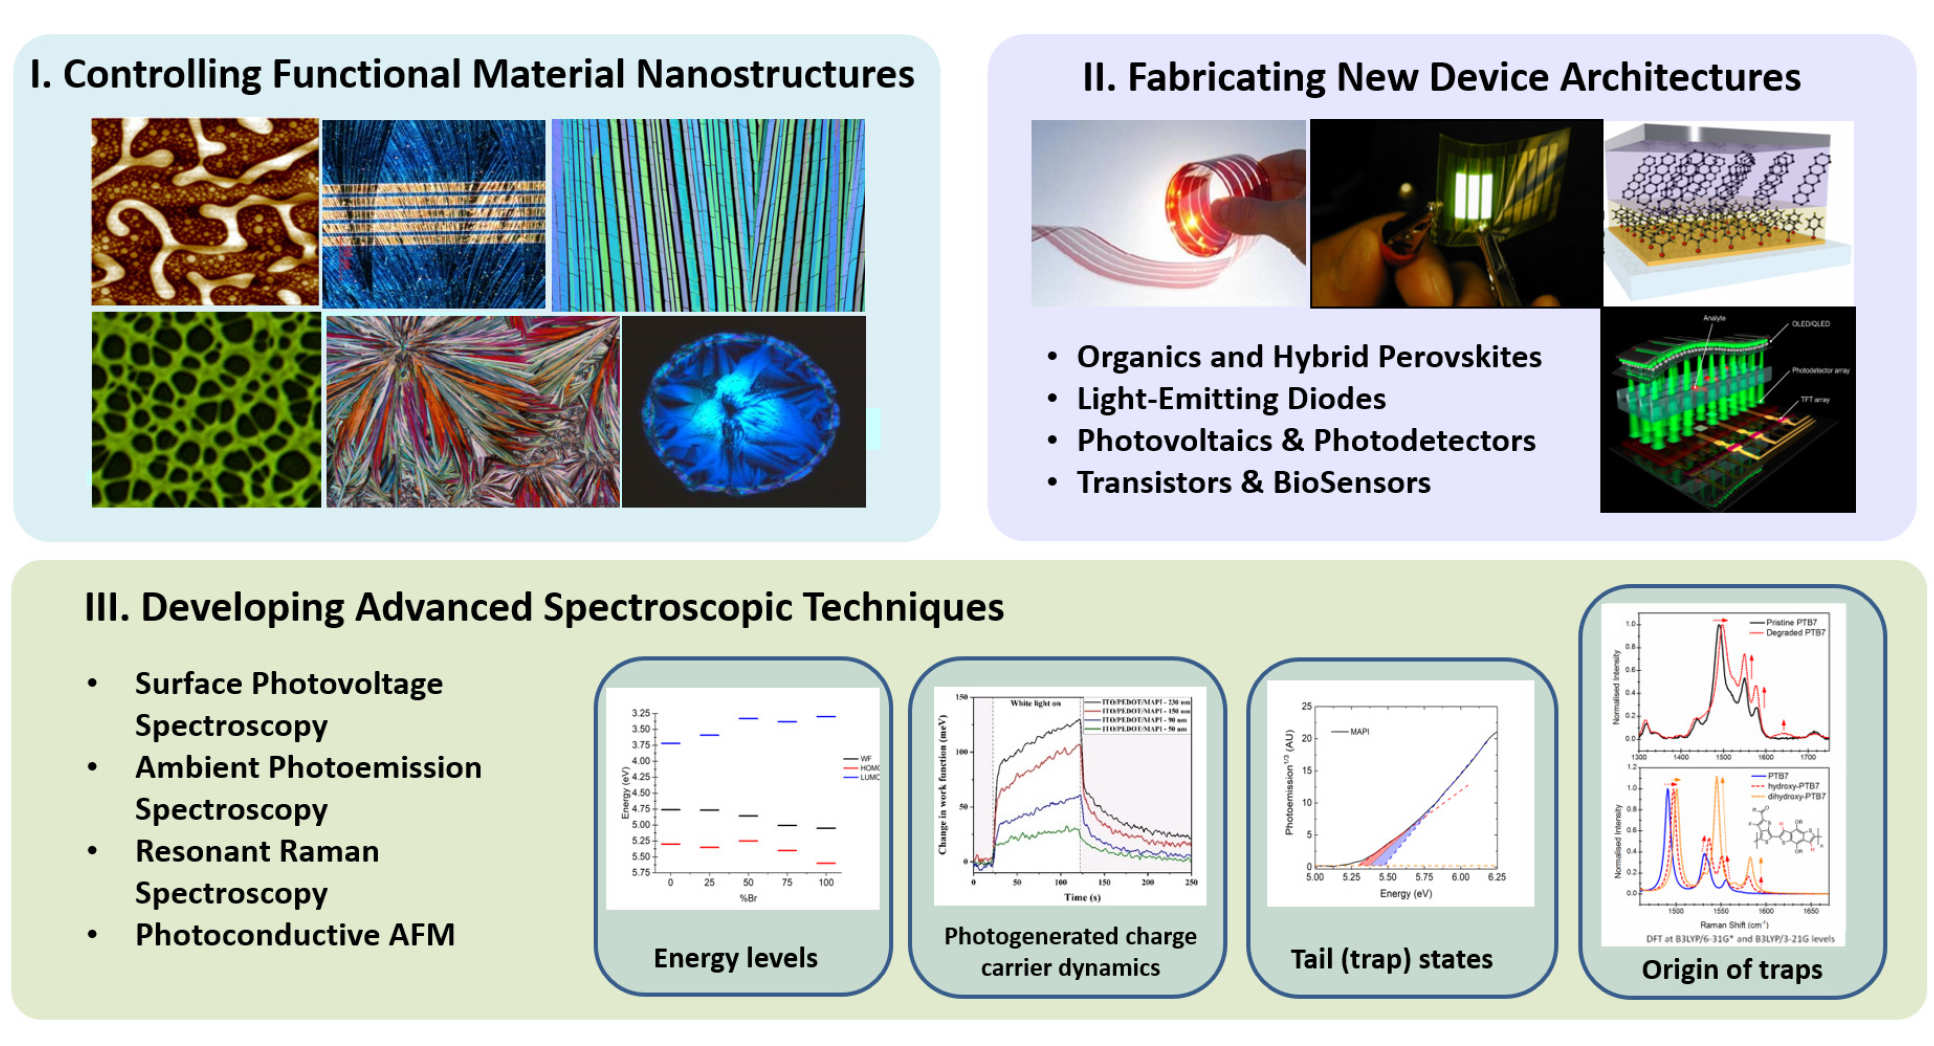 Controlling Functional Material Nanostructures, Fabricating New Device Archiitectures and Developing Advanced Spectroscopic Techniques